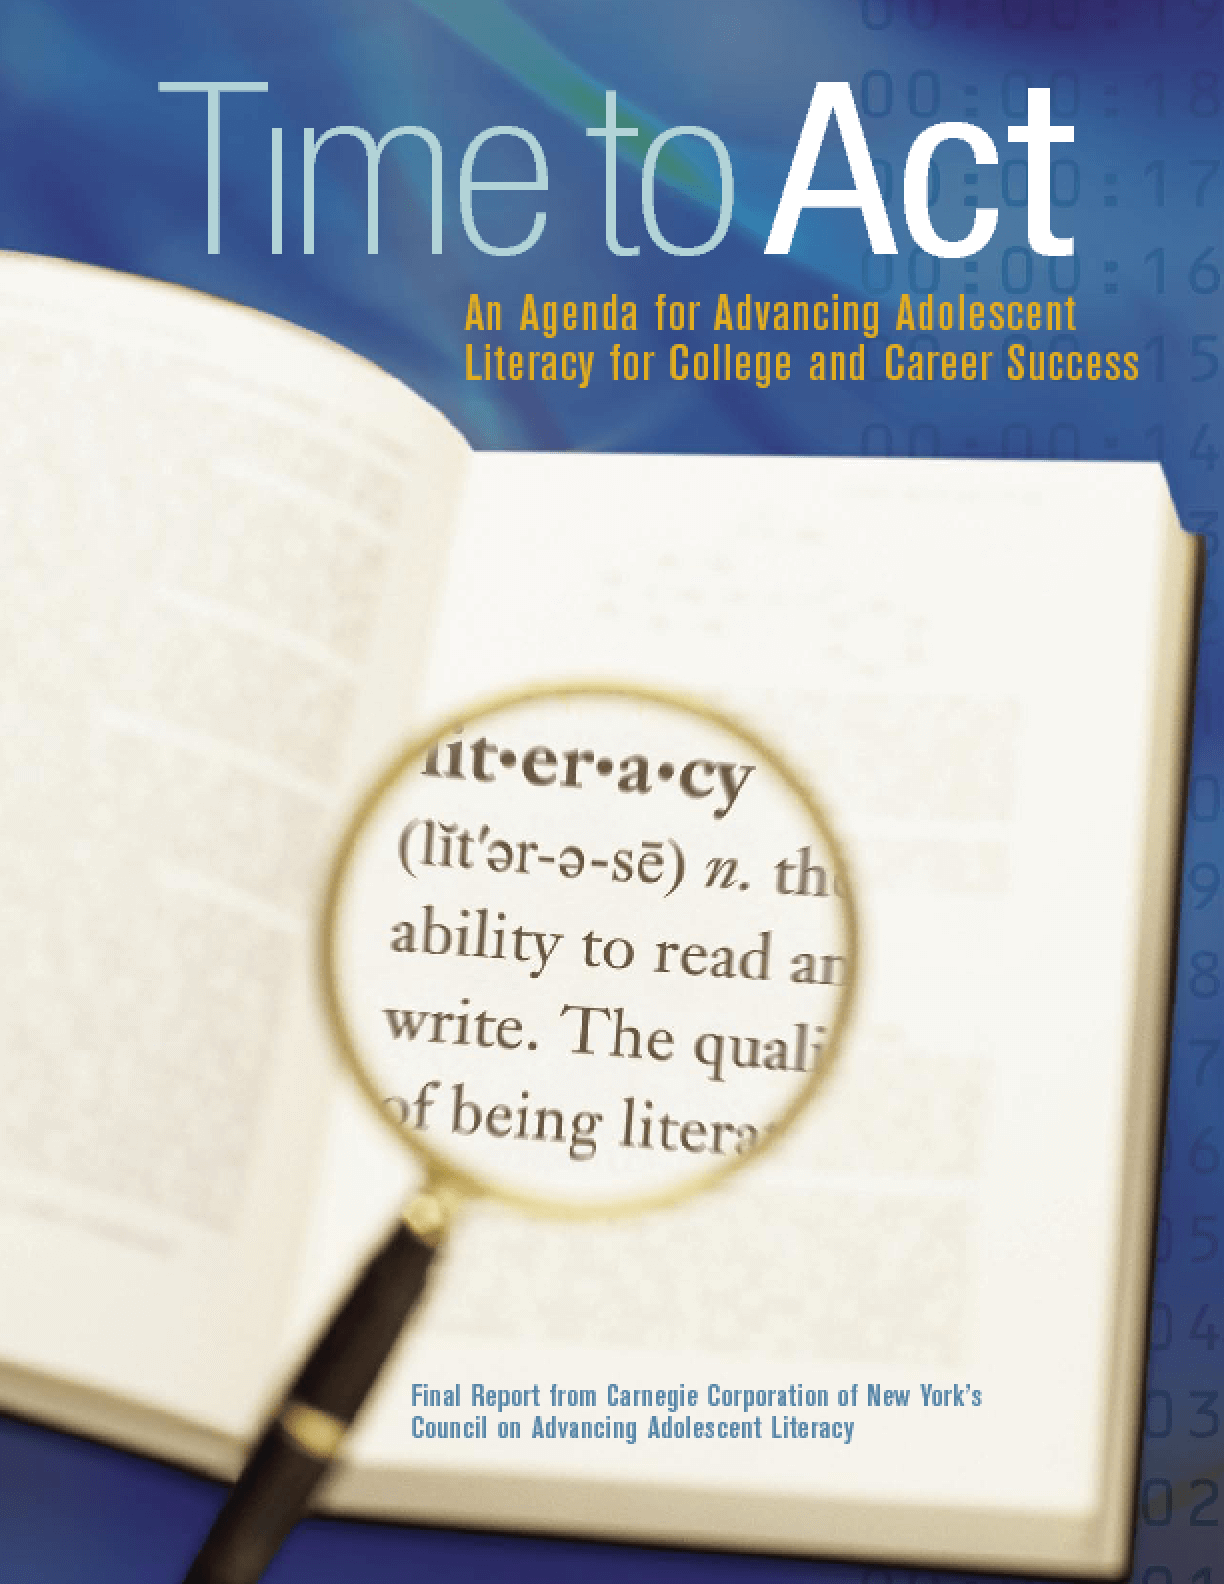 Time to Act: An Agenda for Advancing Adolescent Literacy for College and Career Success